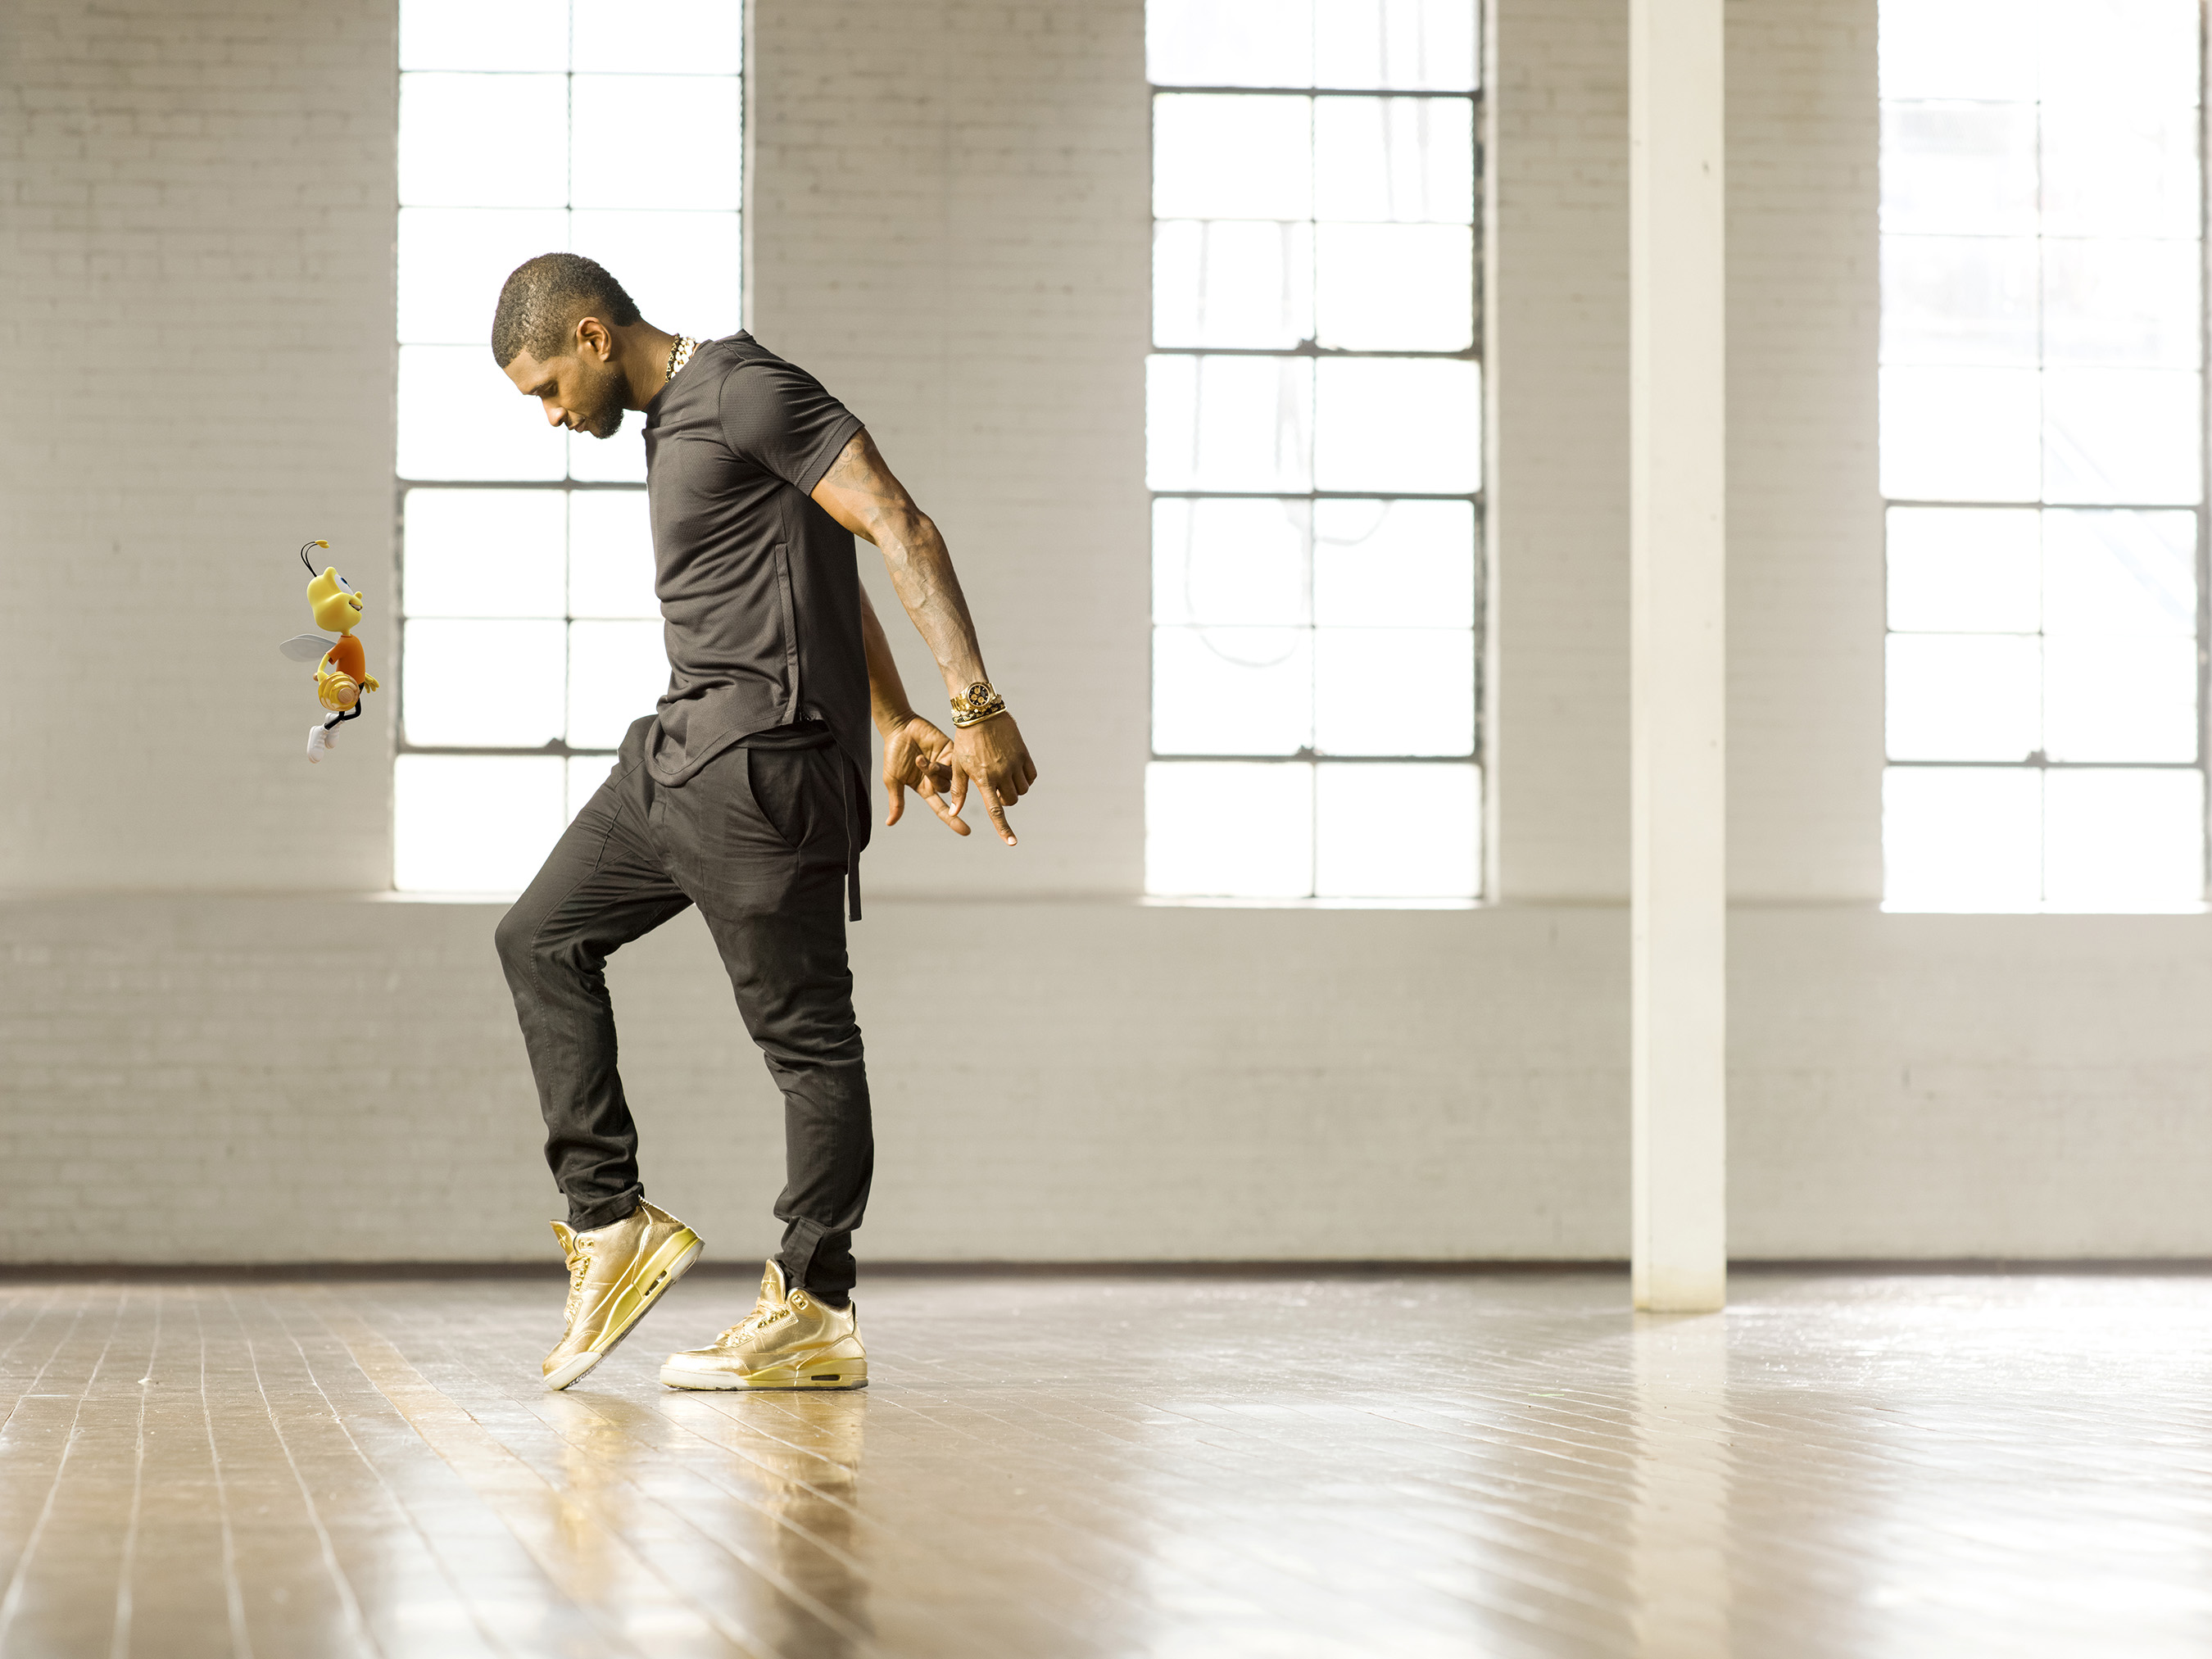 Usher and the Honey Nut Cheerios™ character, Buzz, team up in new ad, using dance to spread the word that being healthy can be fun and delicious